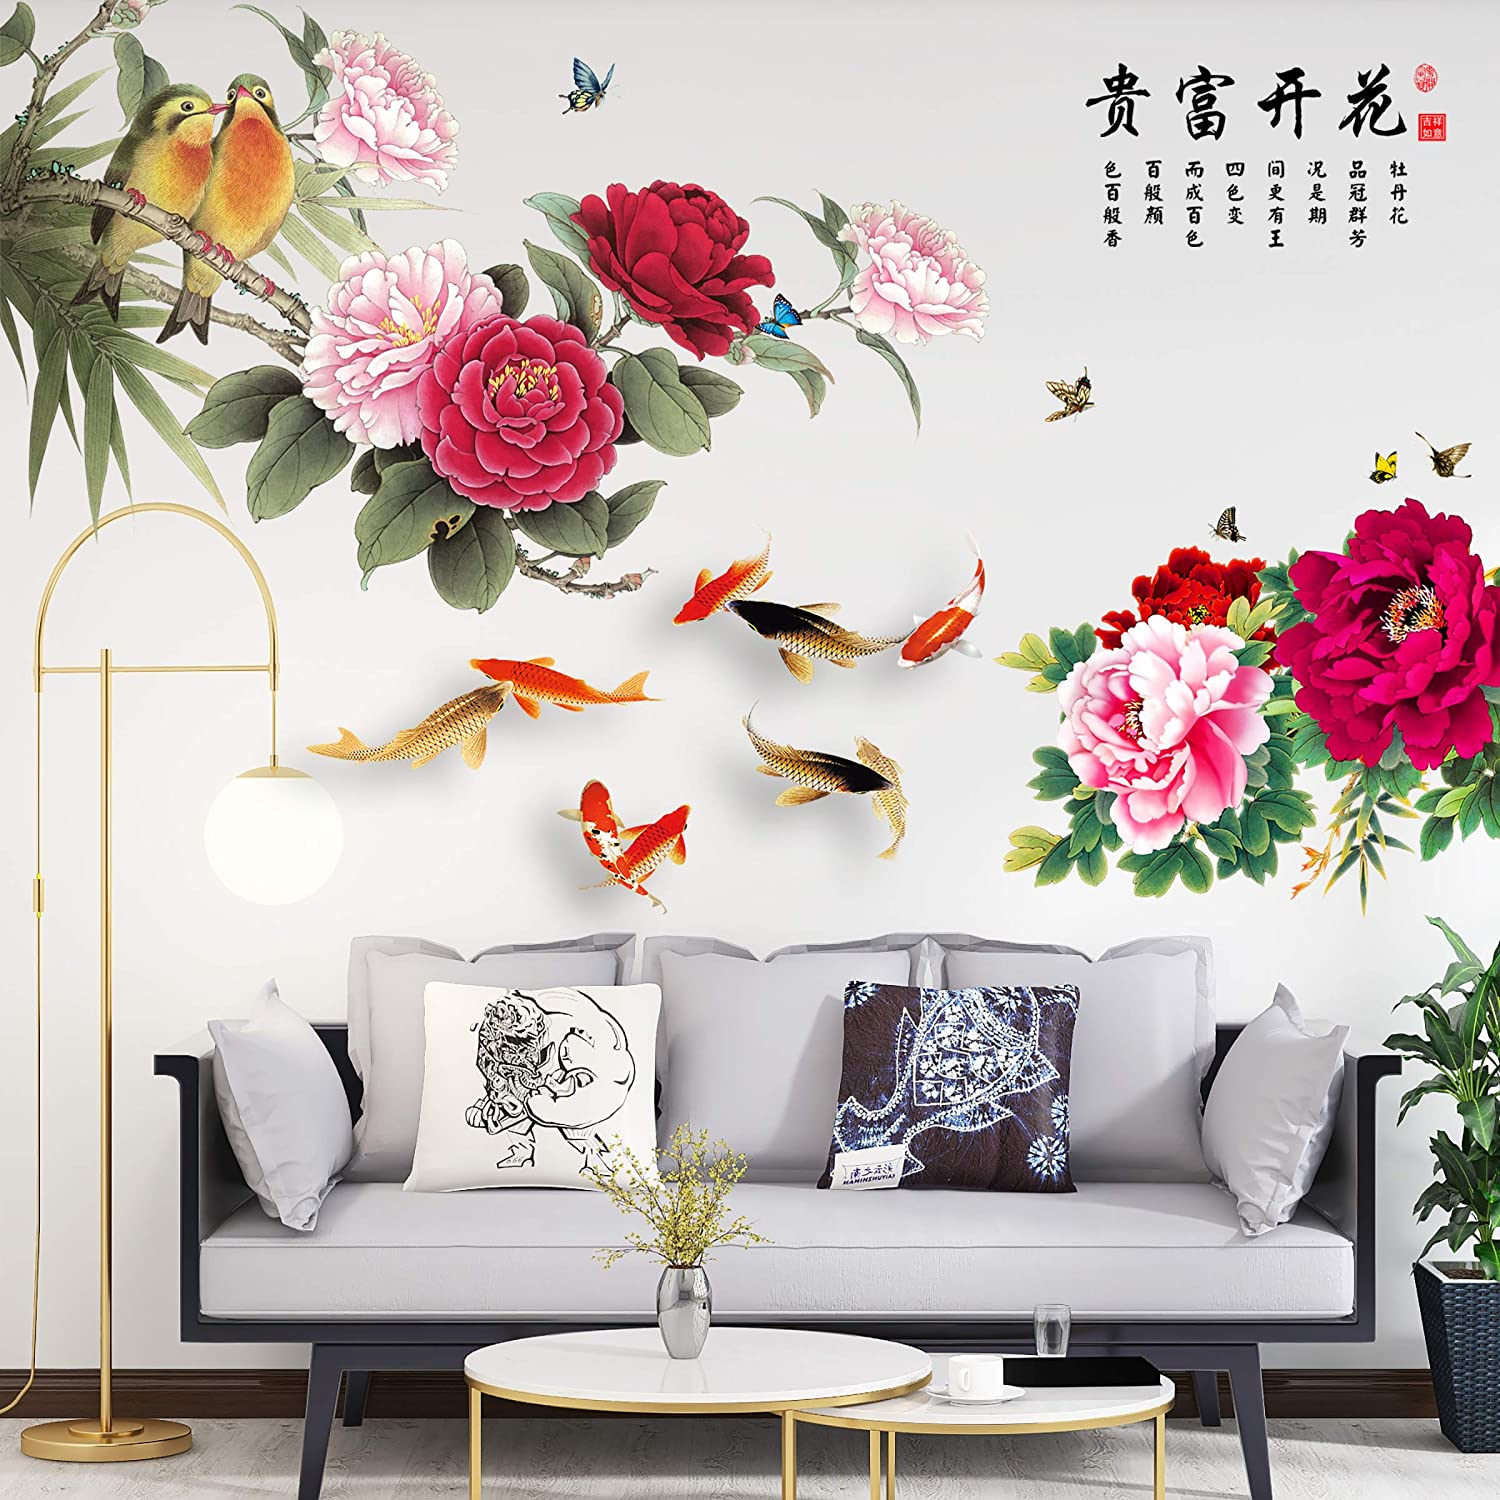 Removable Peony Flowers Wall Stickers Vinyl Decal DIY Home Room Decors Art-Mural